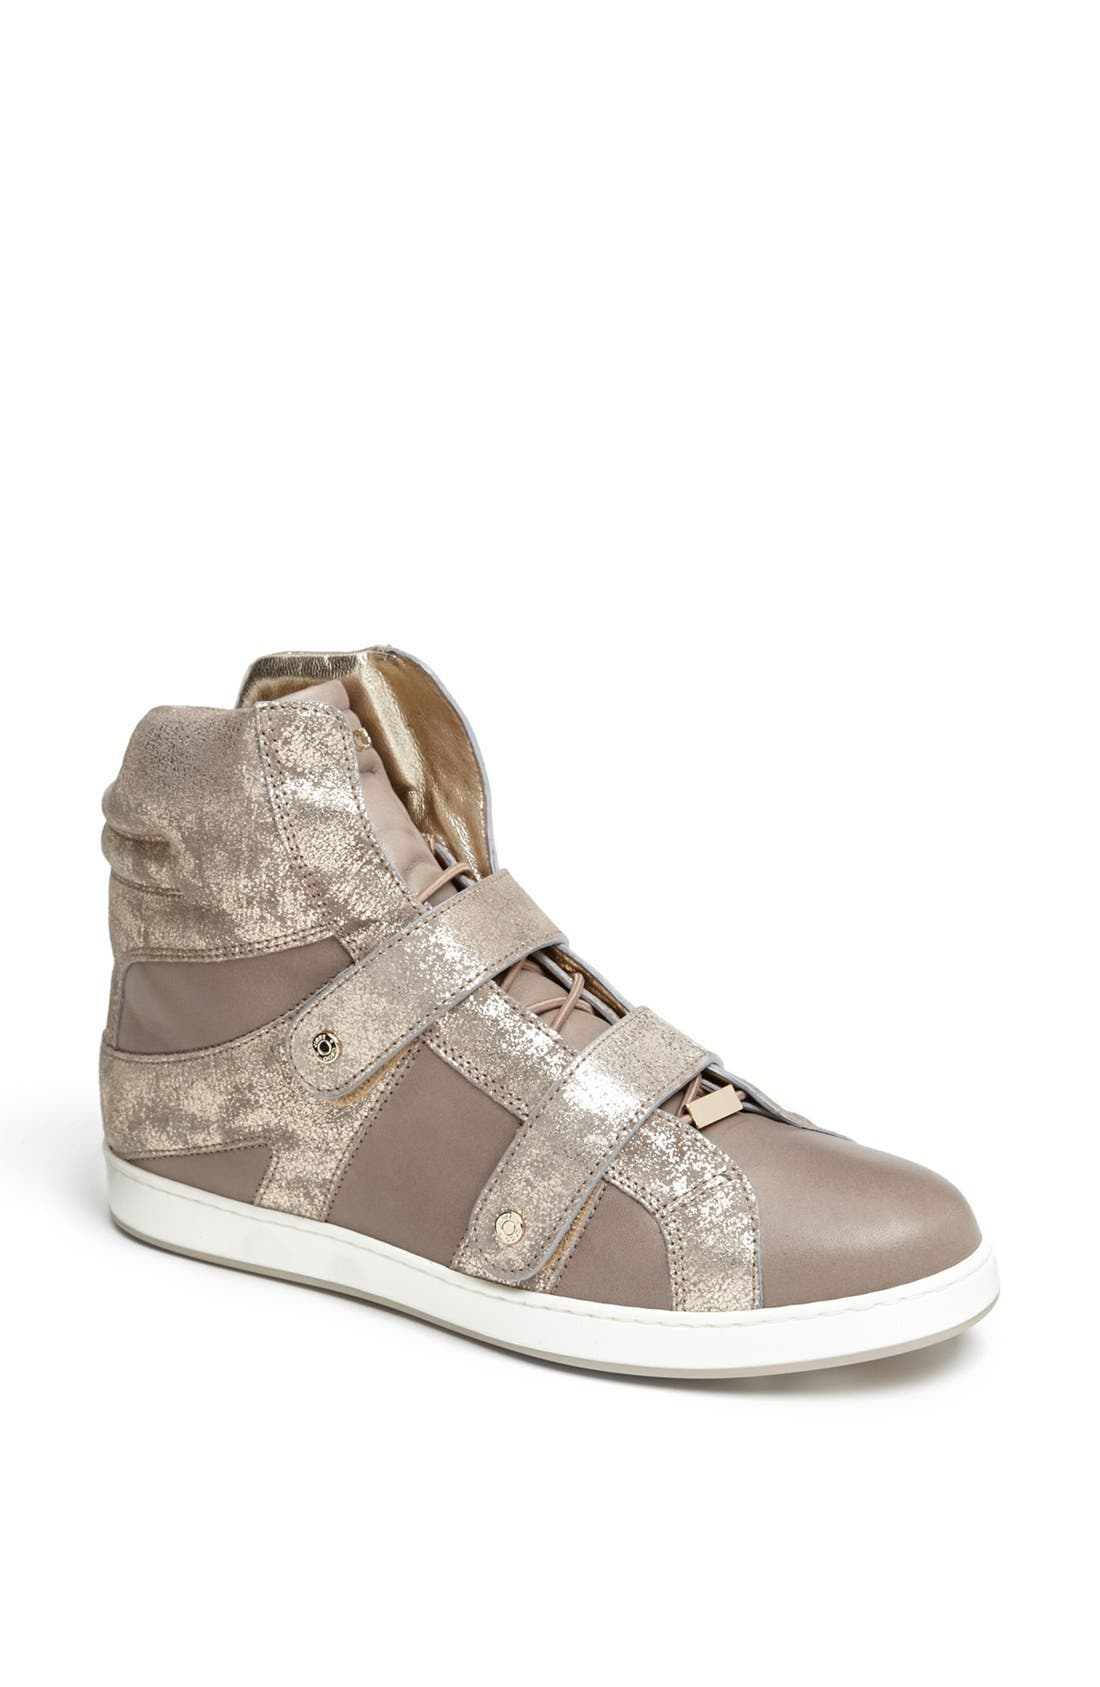 Alternate Image 1 Selected - Jimmy Choo 'Yazz' Sneaker